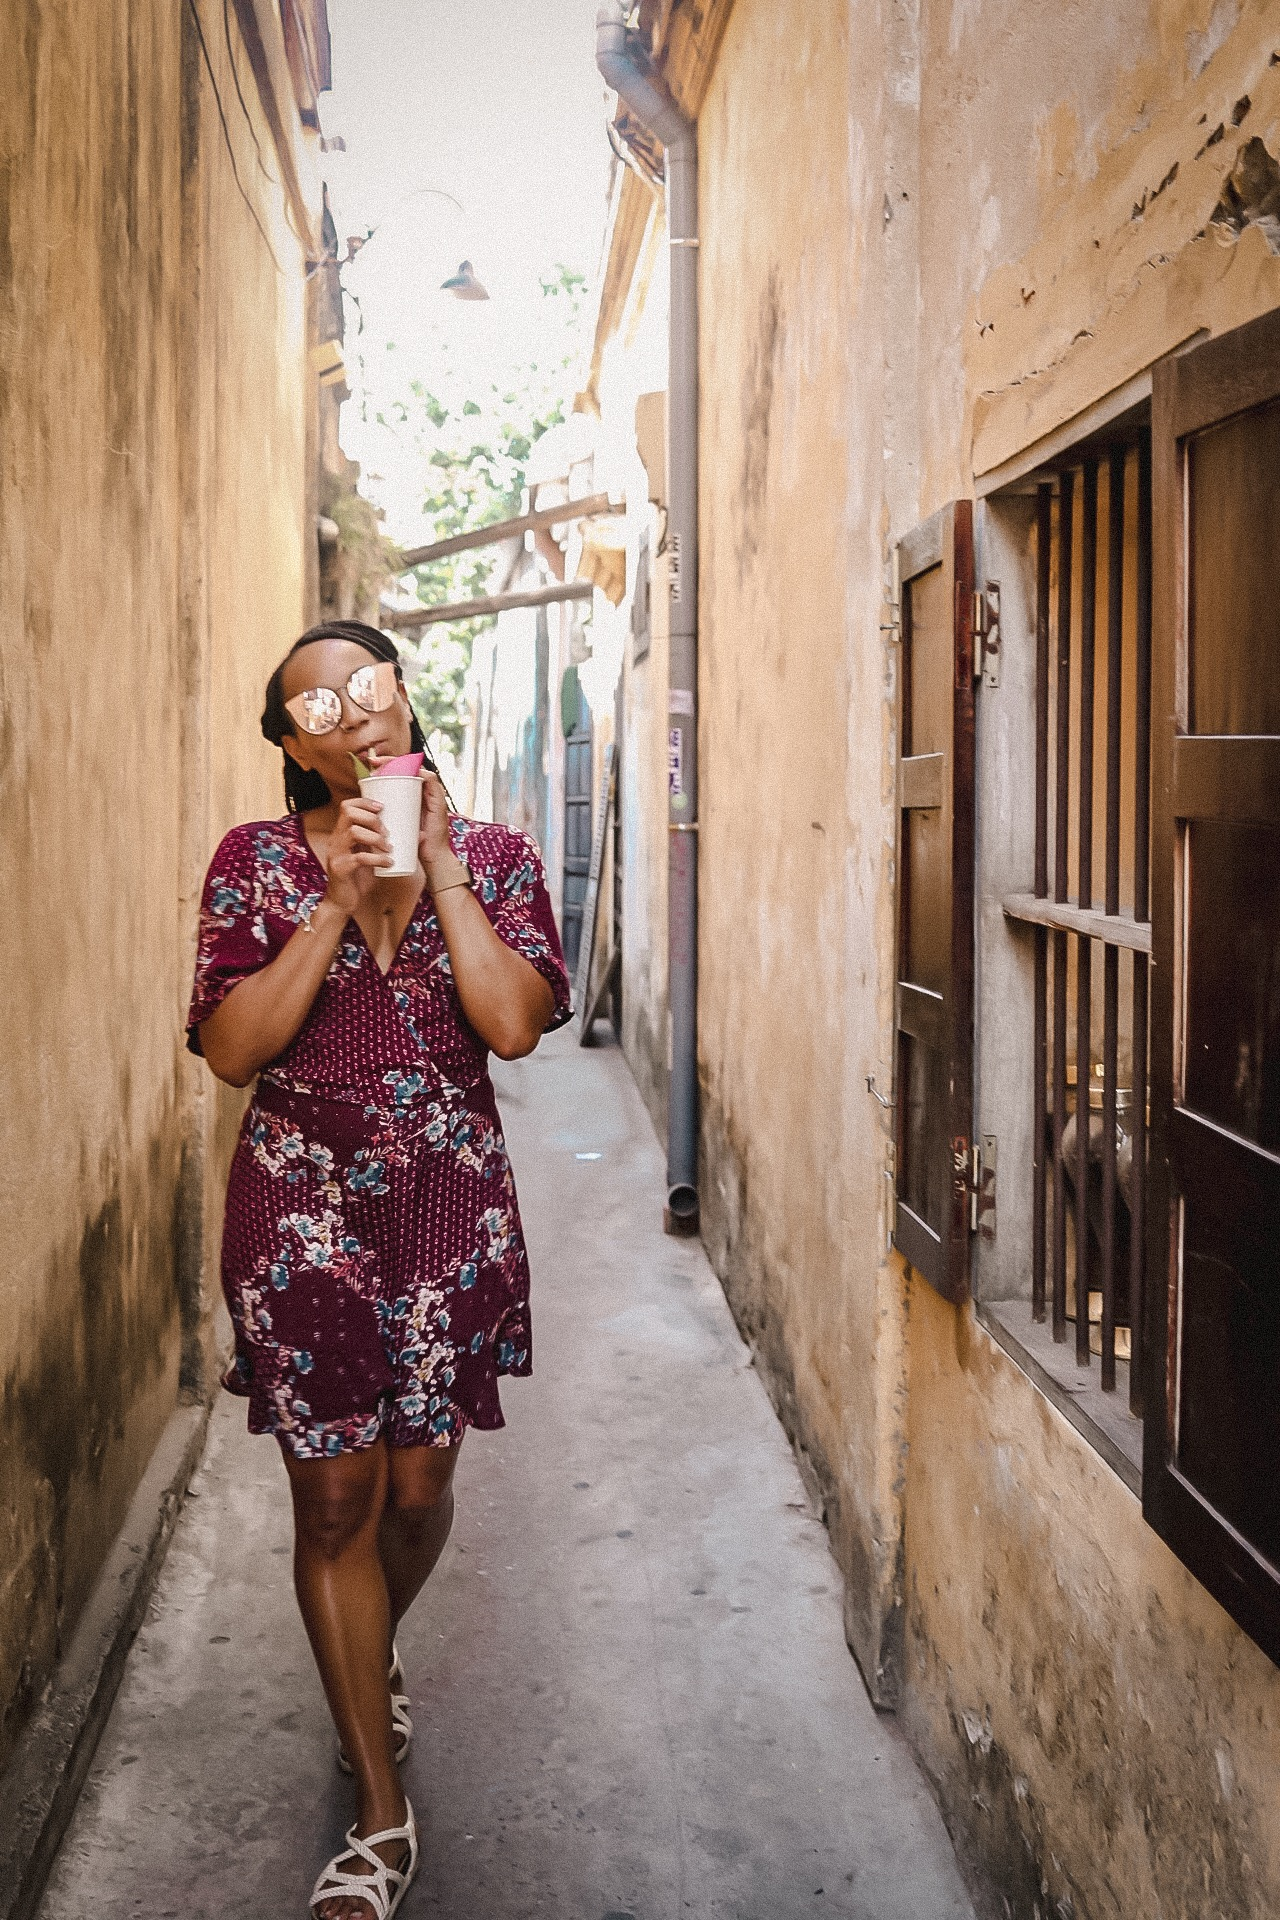 Illustrated by Sade - Drinking tea in an alley way in Hoi An, Vietnam